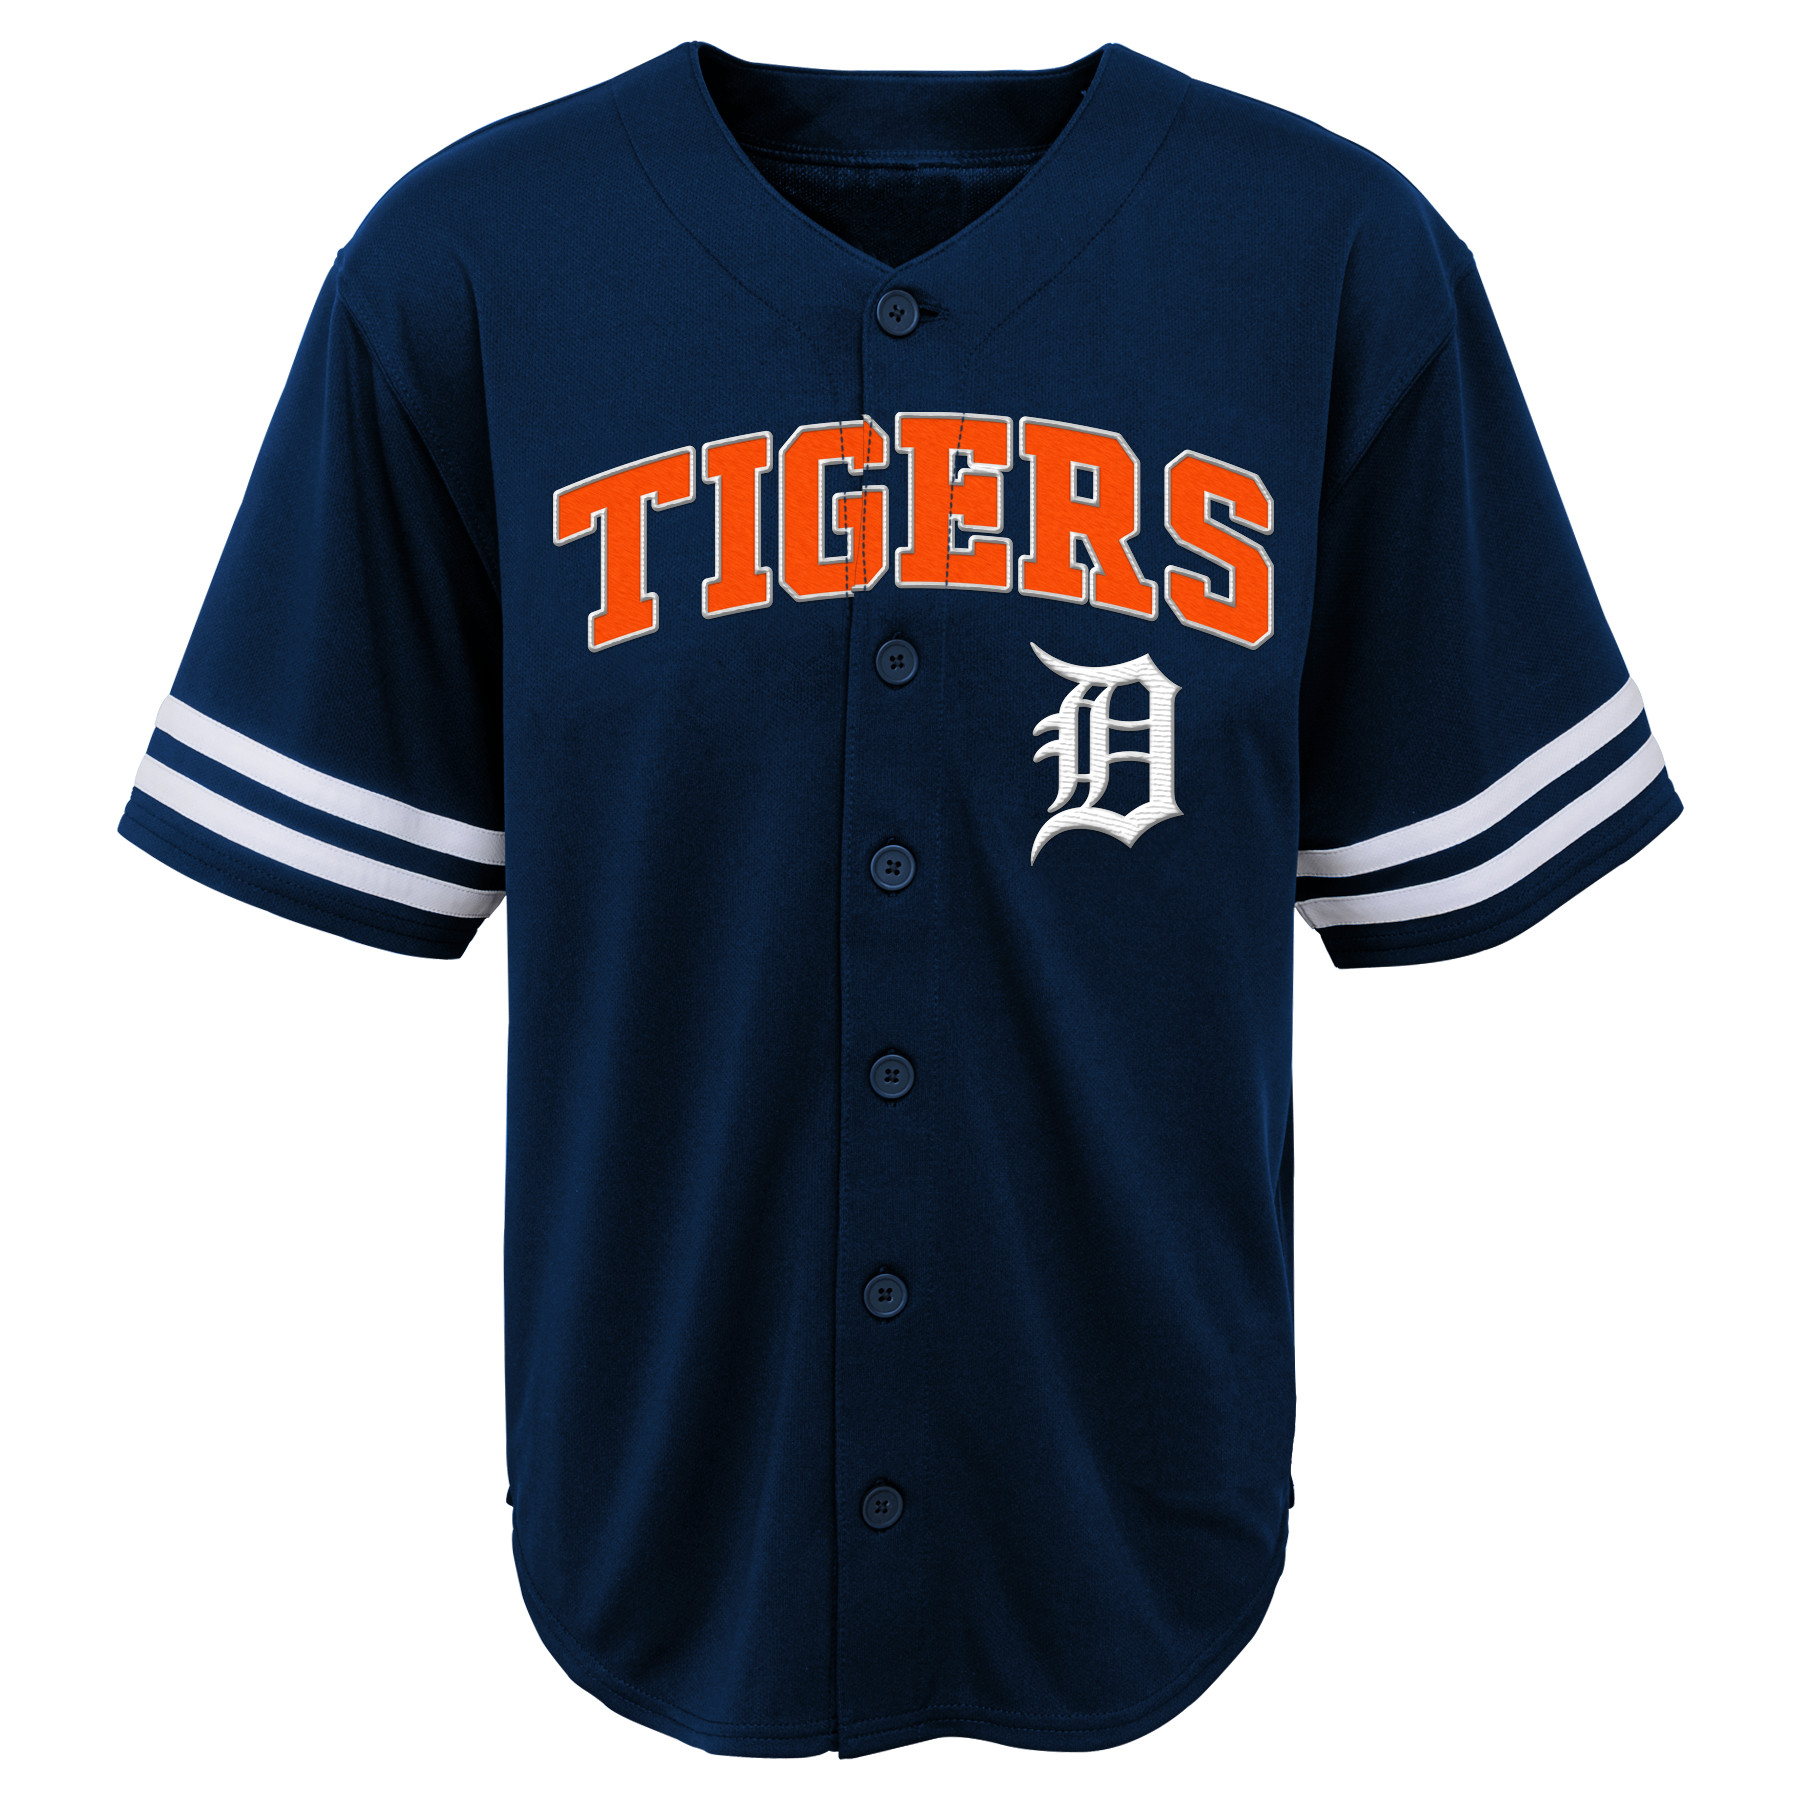 MLB Detroit TIGERS TEE Short Sleeve Boys Fashion Jersey Tee 60% Cotton 40% Polyester BLACK Team Tee 4-18